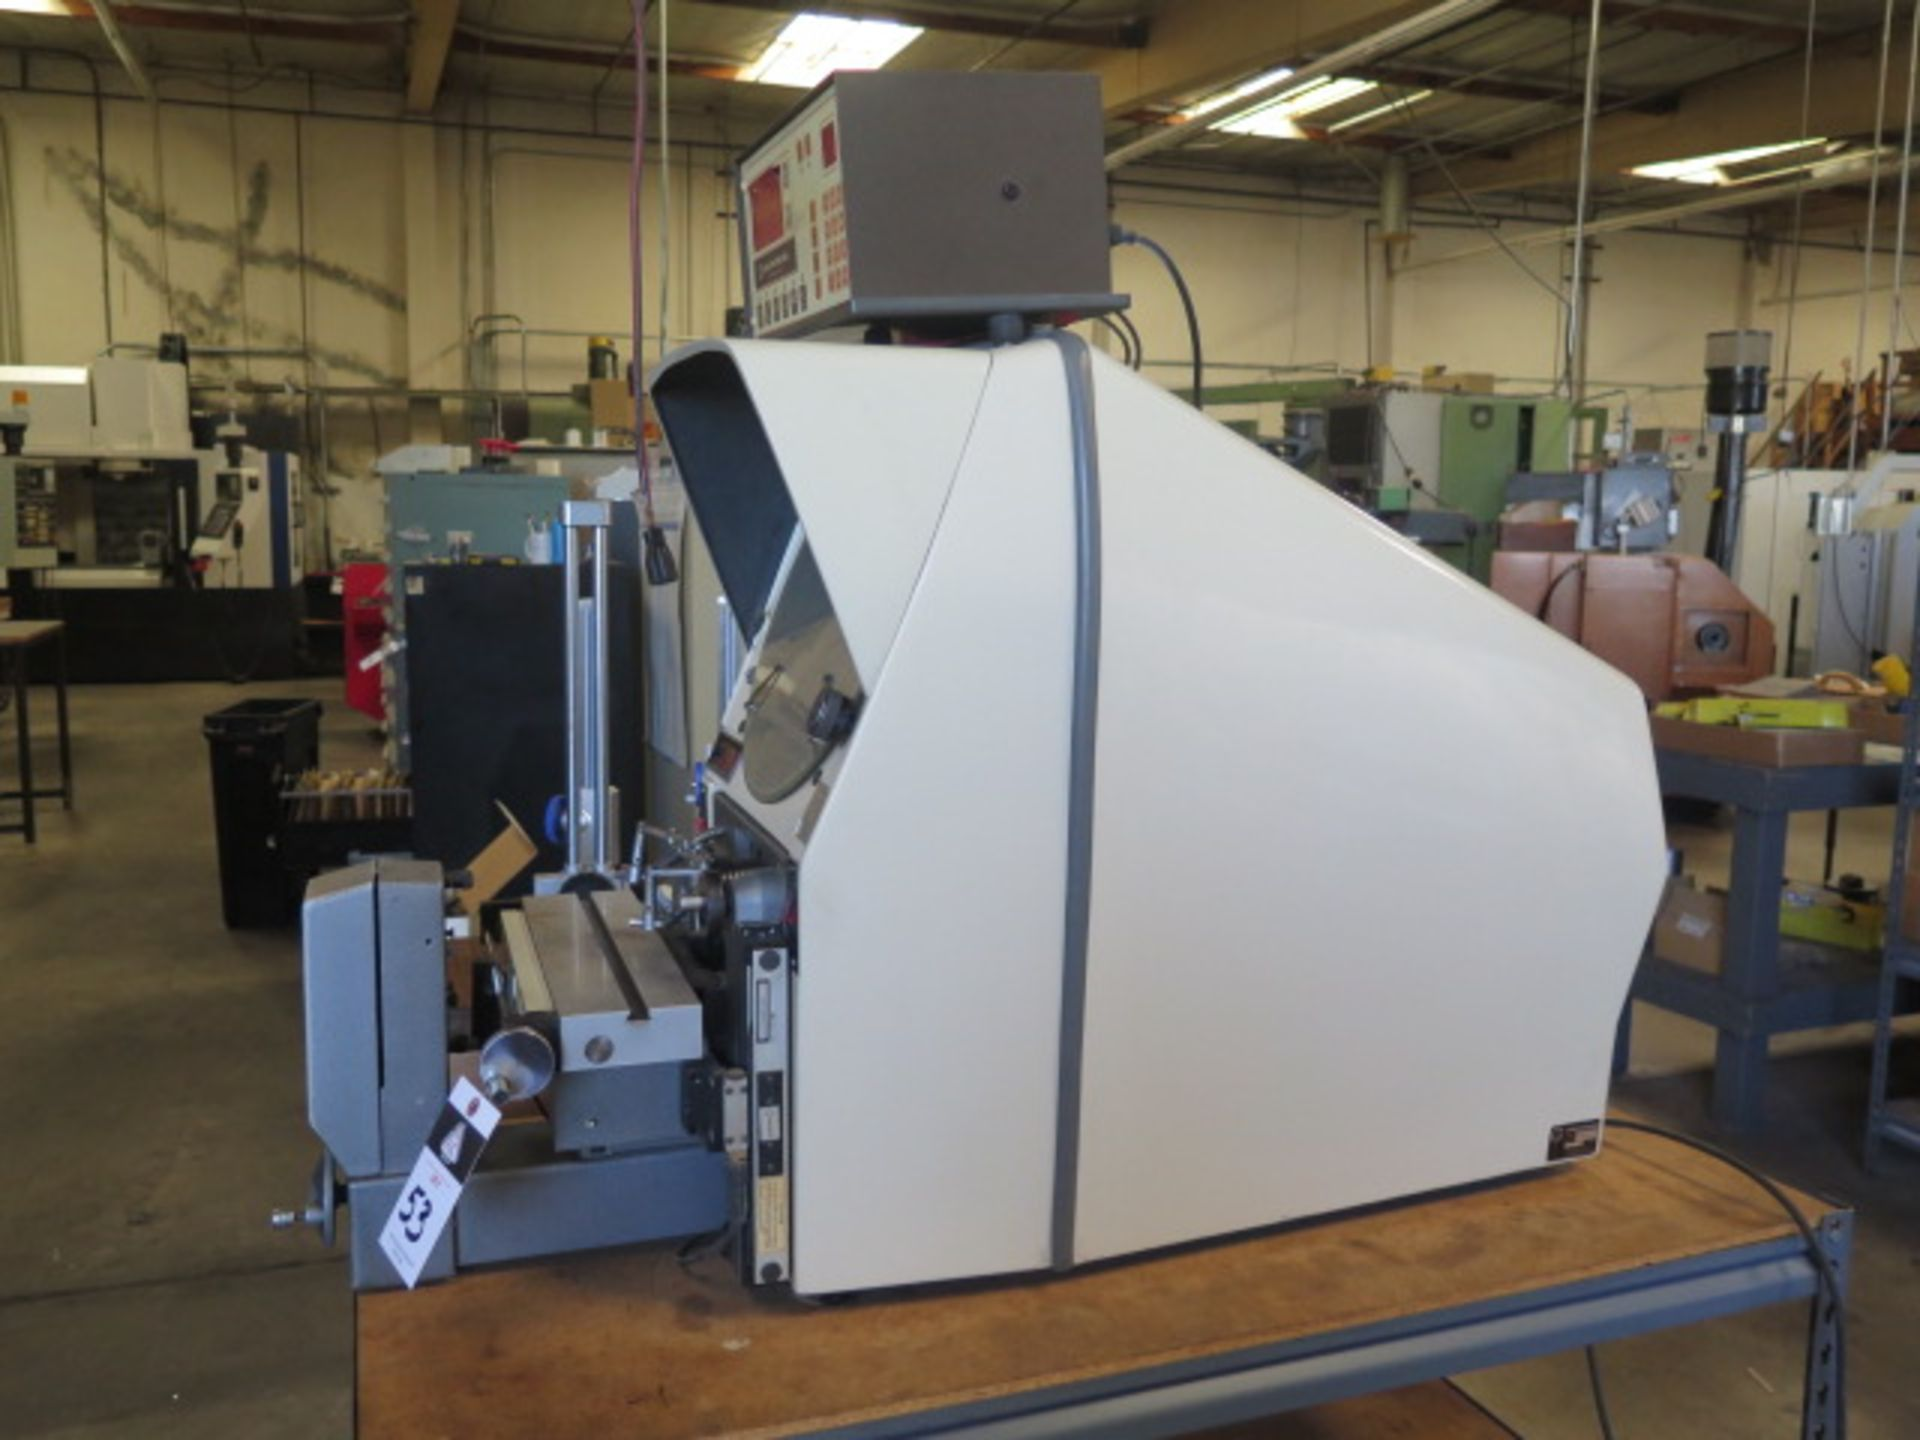 """Gage Master Series 20 13"""" Optical Comparator w/ Gage Master GM4 DRO, Dig Angular Readout, SOLD AS IS - Image 3 of 10"""